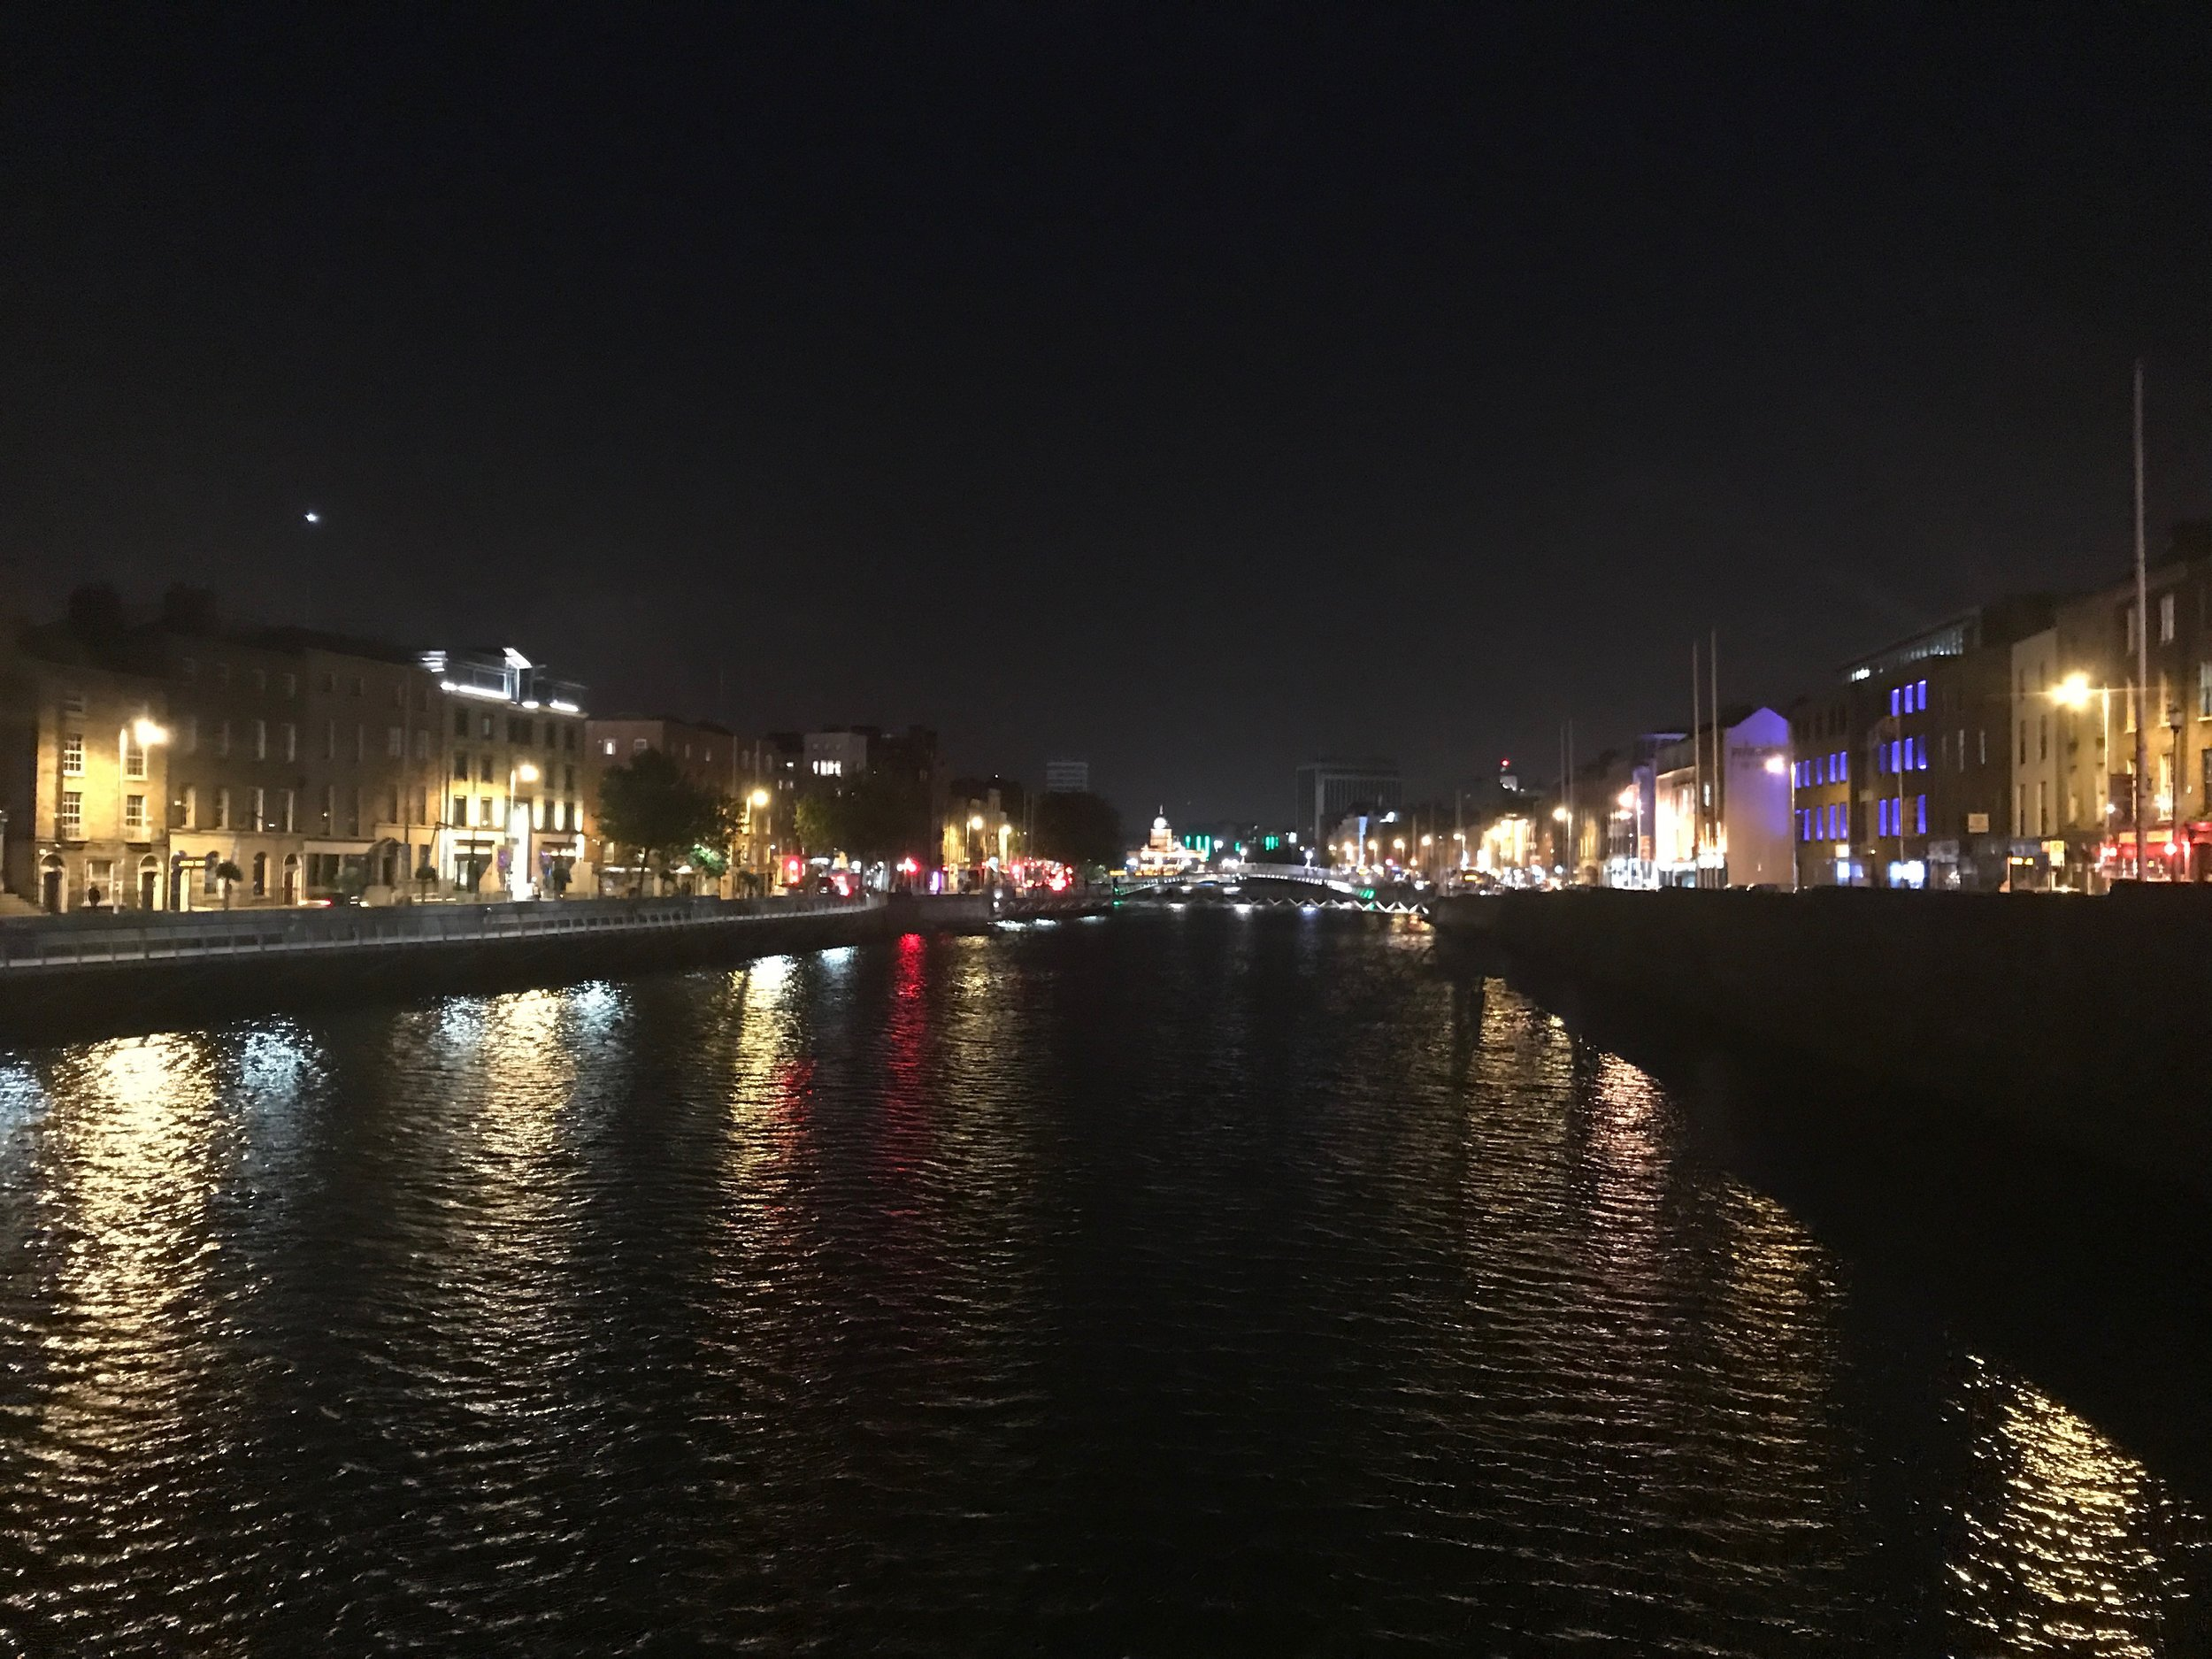 Overlooking the River Liffey at night.